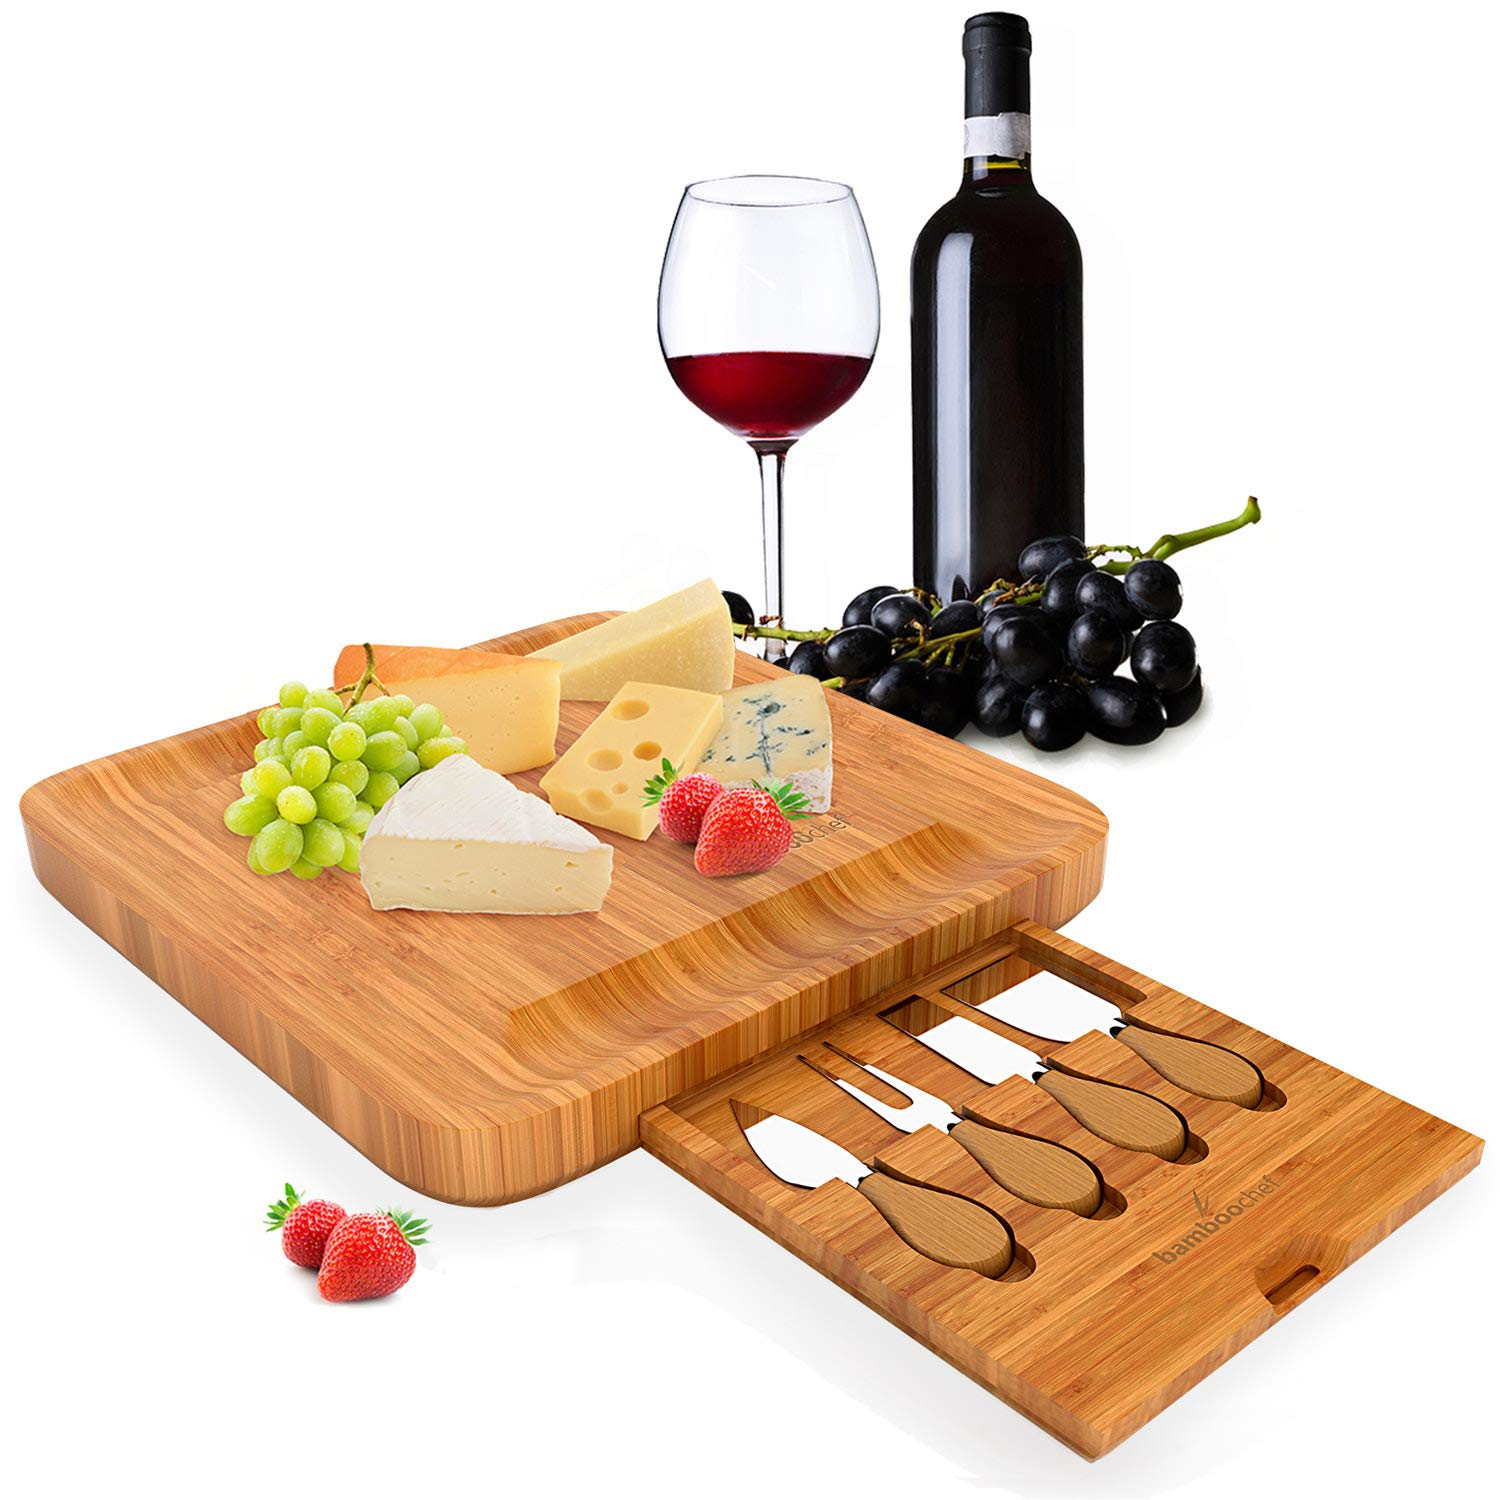 Bamboo Cheese Board with Cutlery Set – Includes Slide-Out Drawer with 4 Stainless Steel Knife and Server Set, Perfect Cheese Platter, Wooden Charcuterie Serving Platter – Perfect Gift Idea